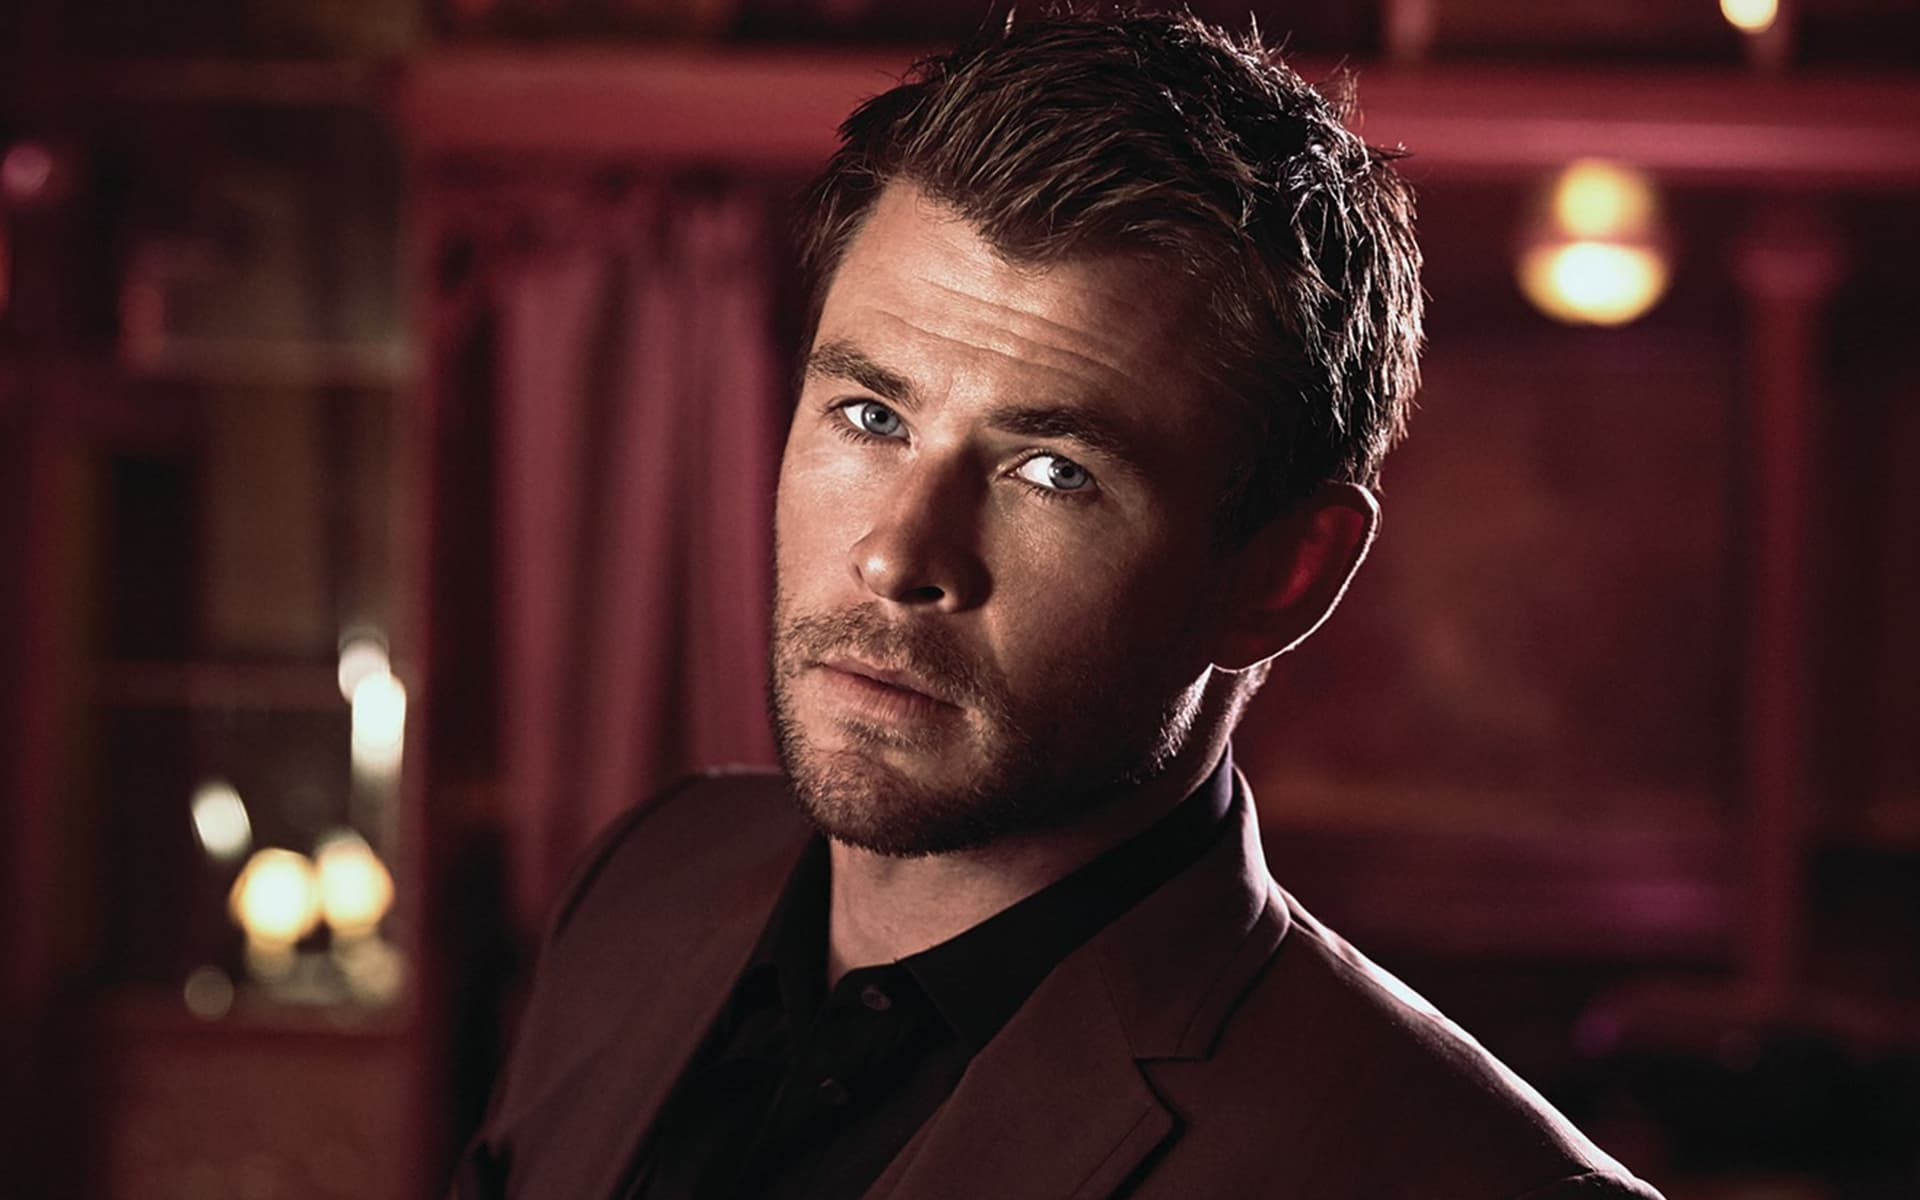 Wallpaper Chris Hemsworth face 1080p pictures HD